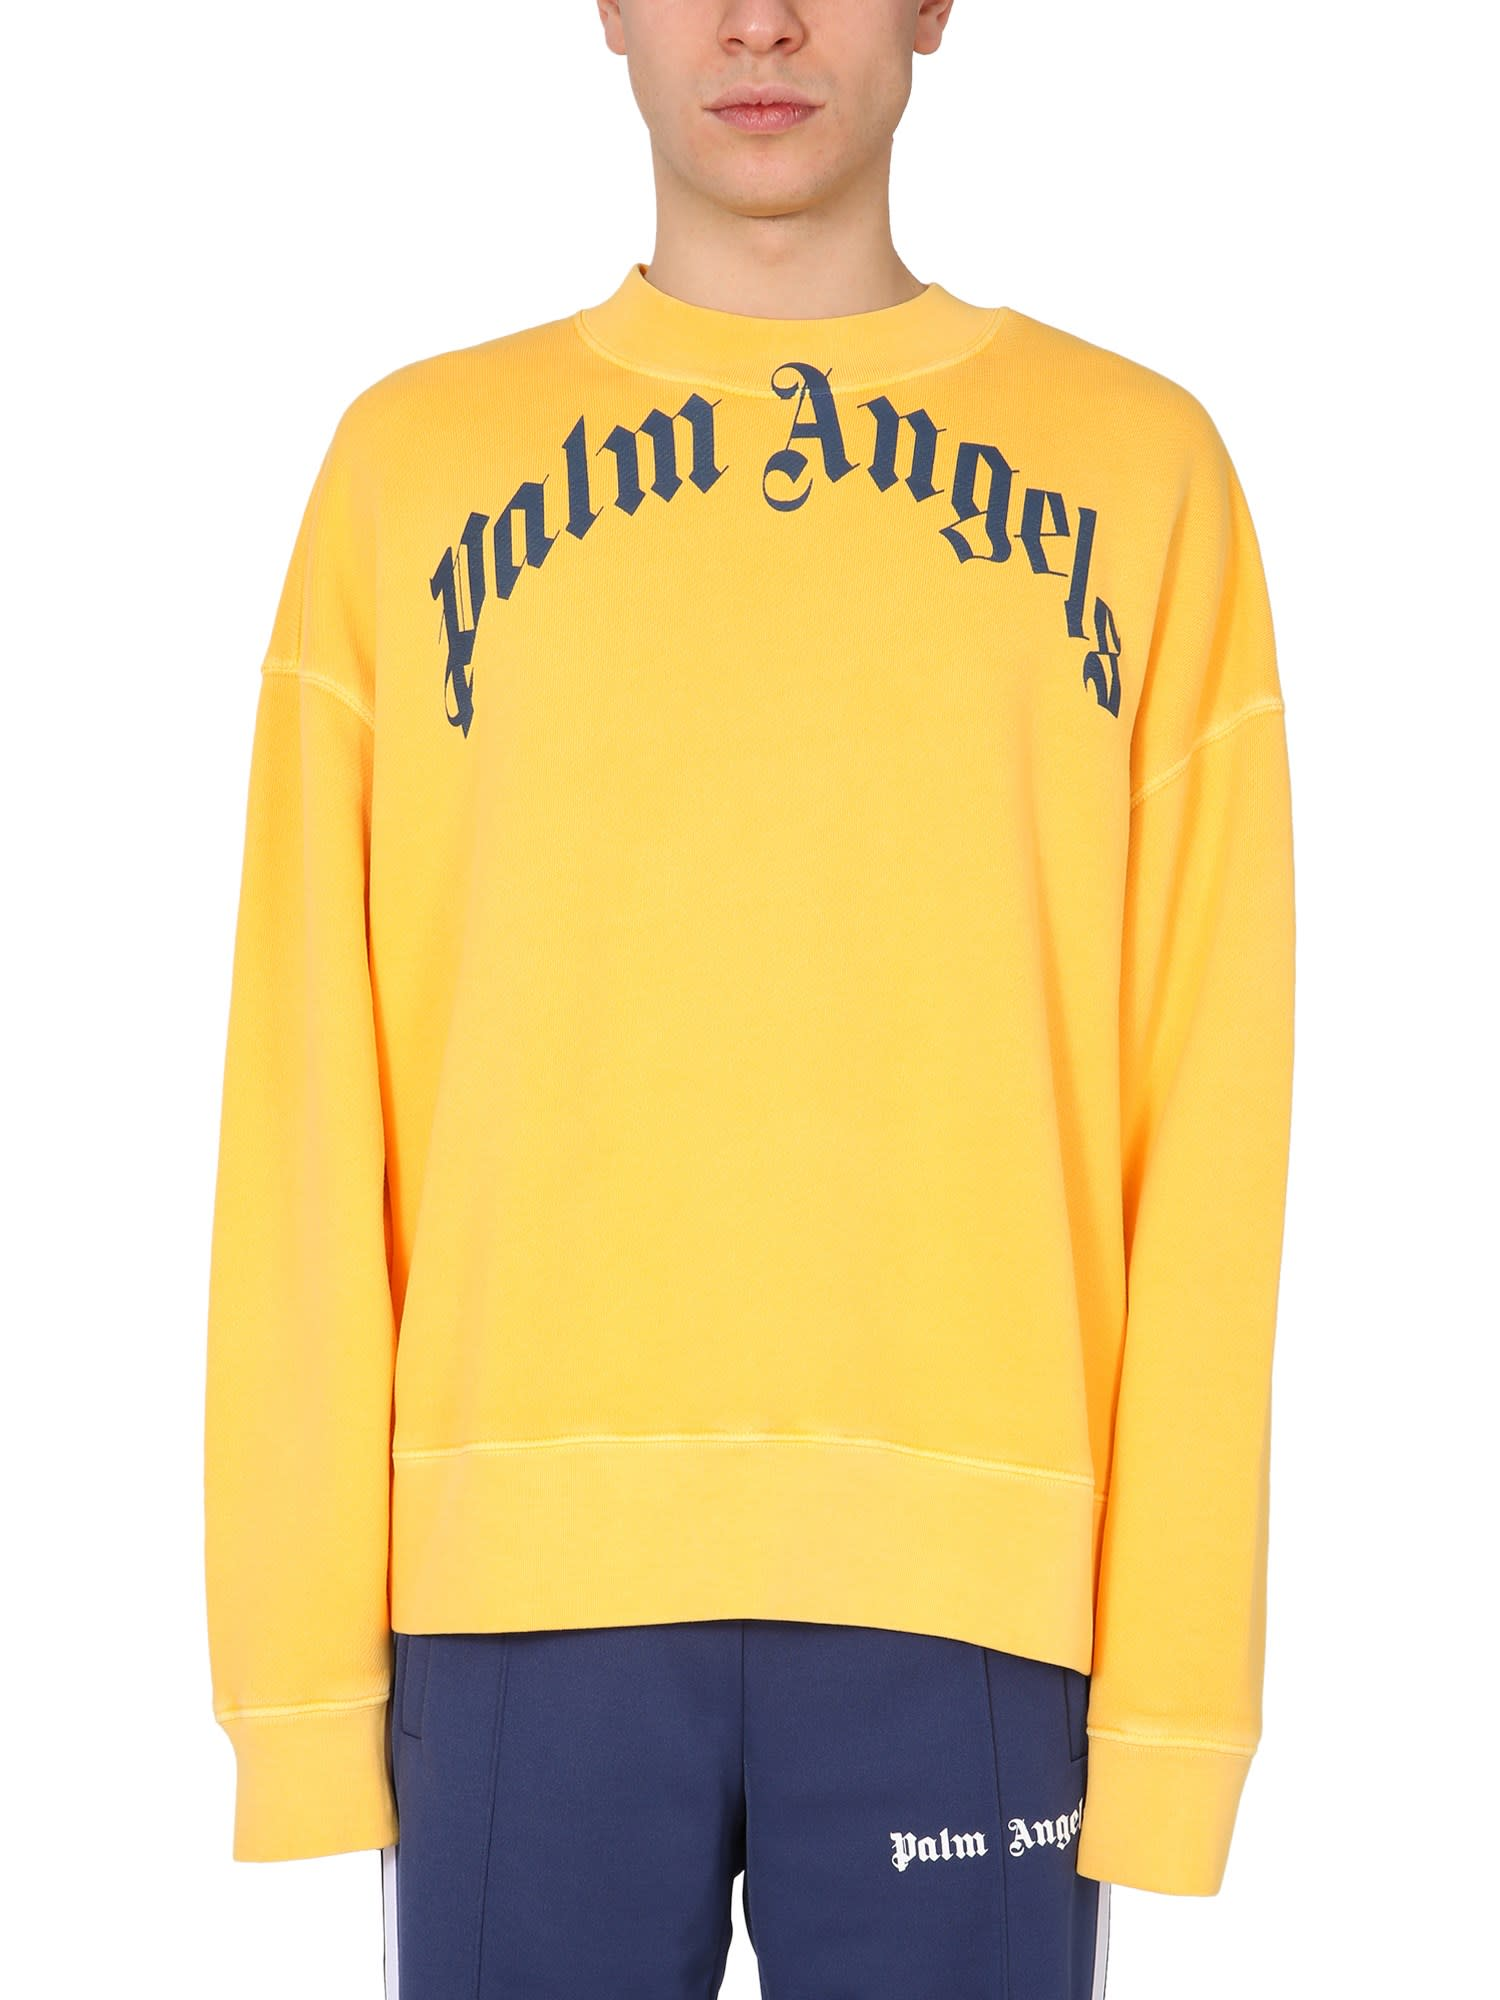 Palm Angels CREW NECK SWEATSHIRT